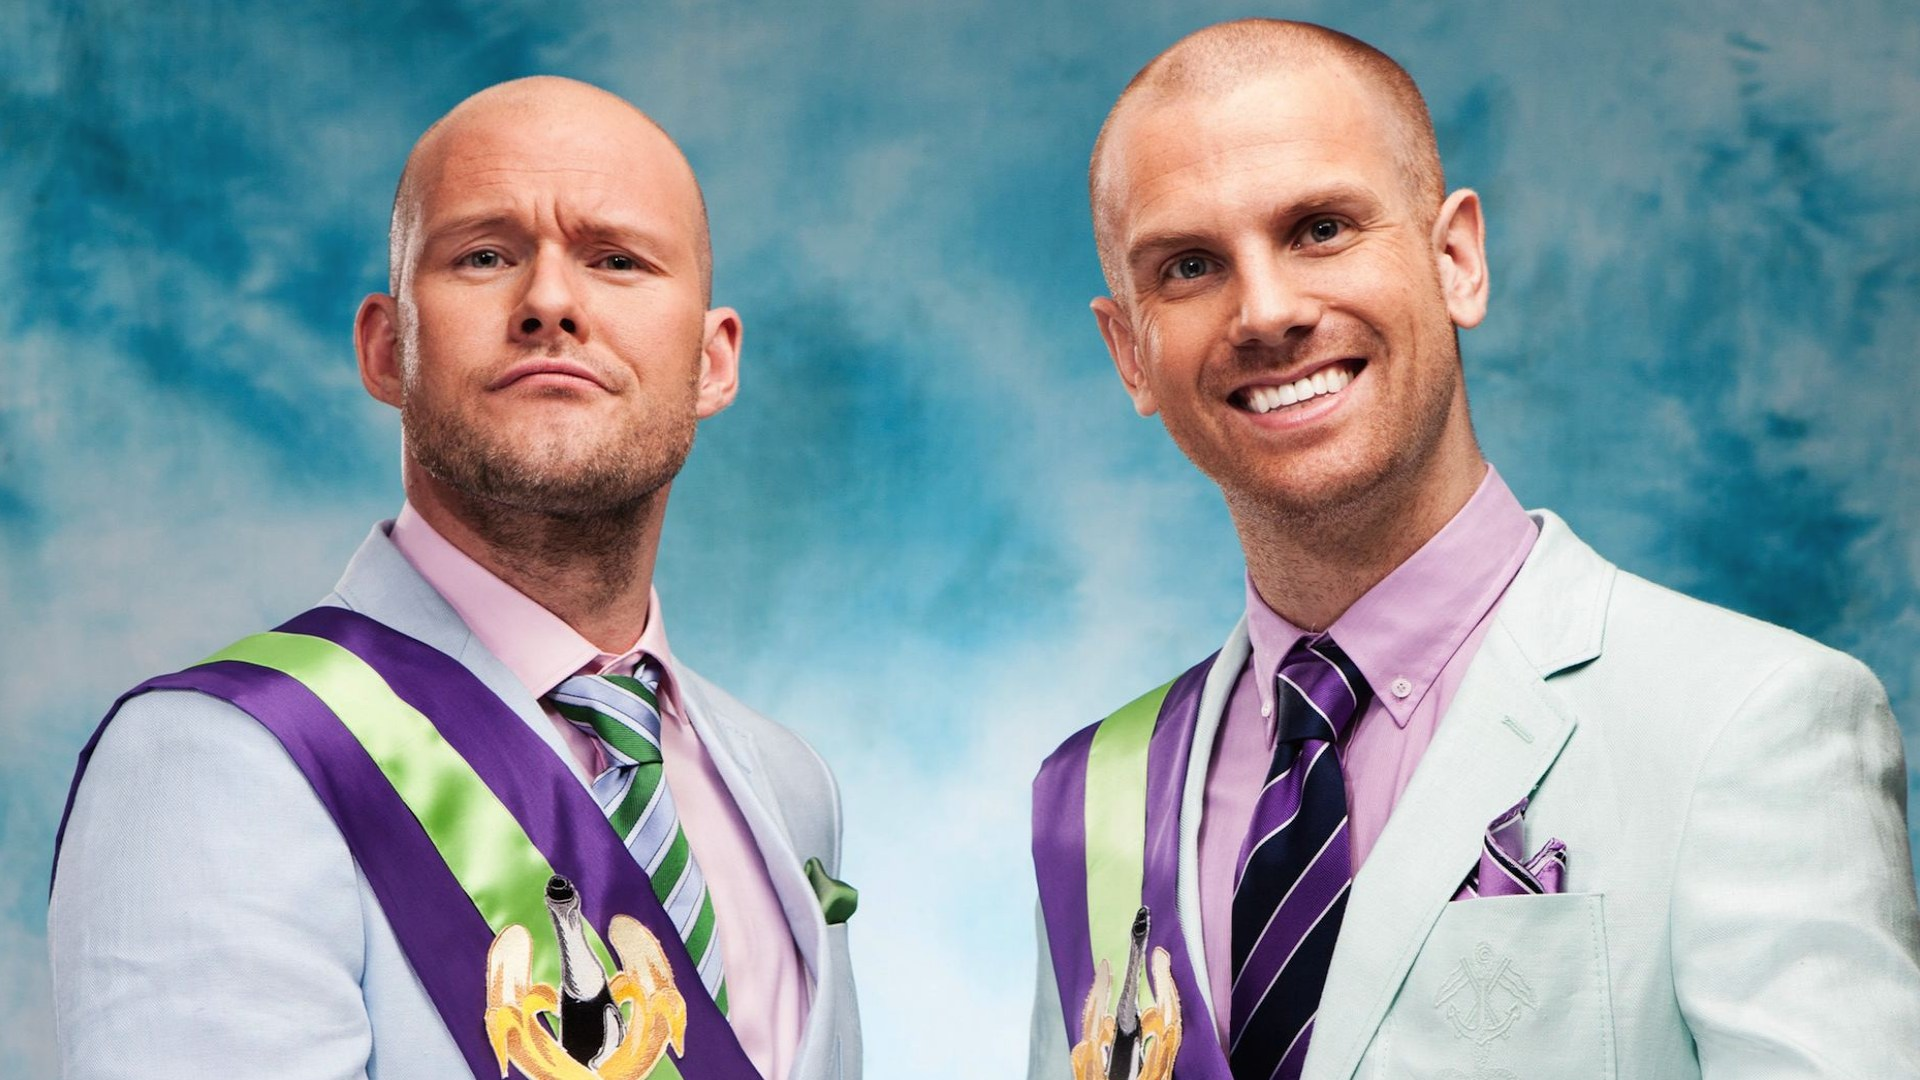 Dada Life Offers Donald Trump a Position with Dada Land